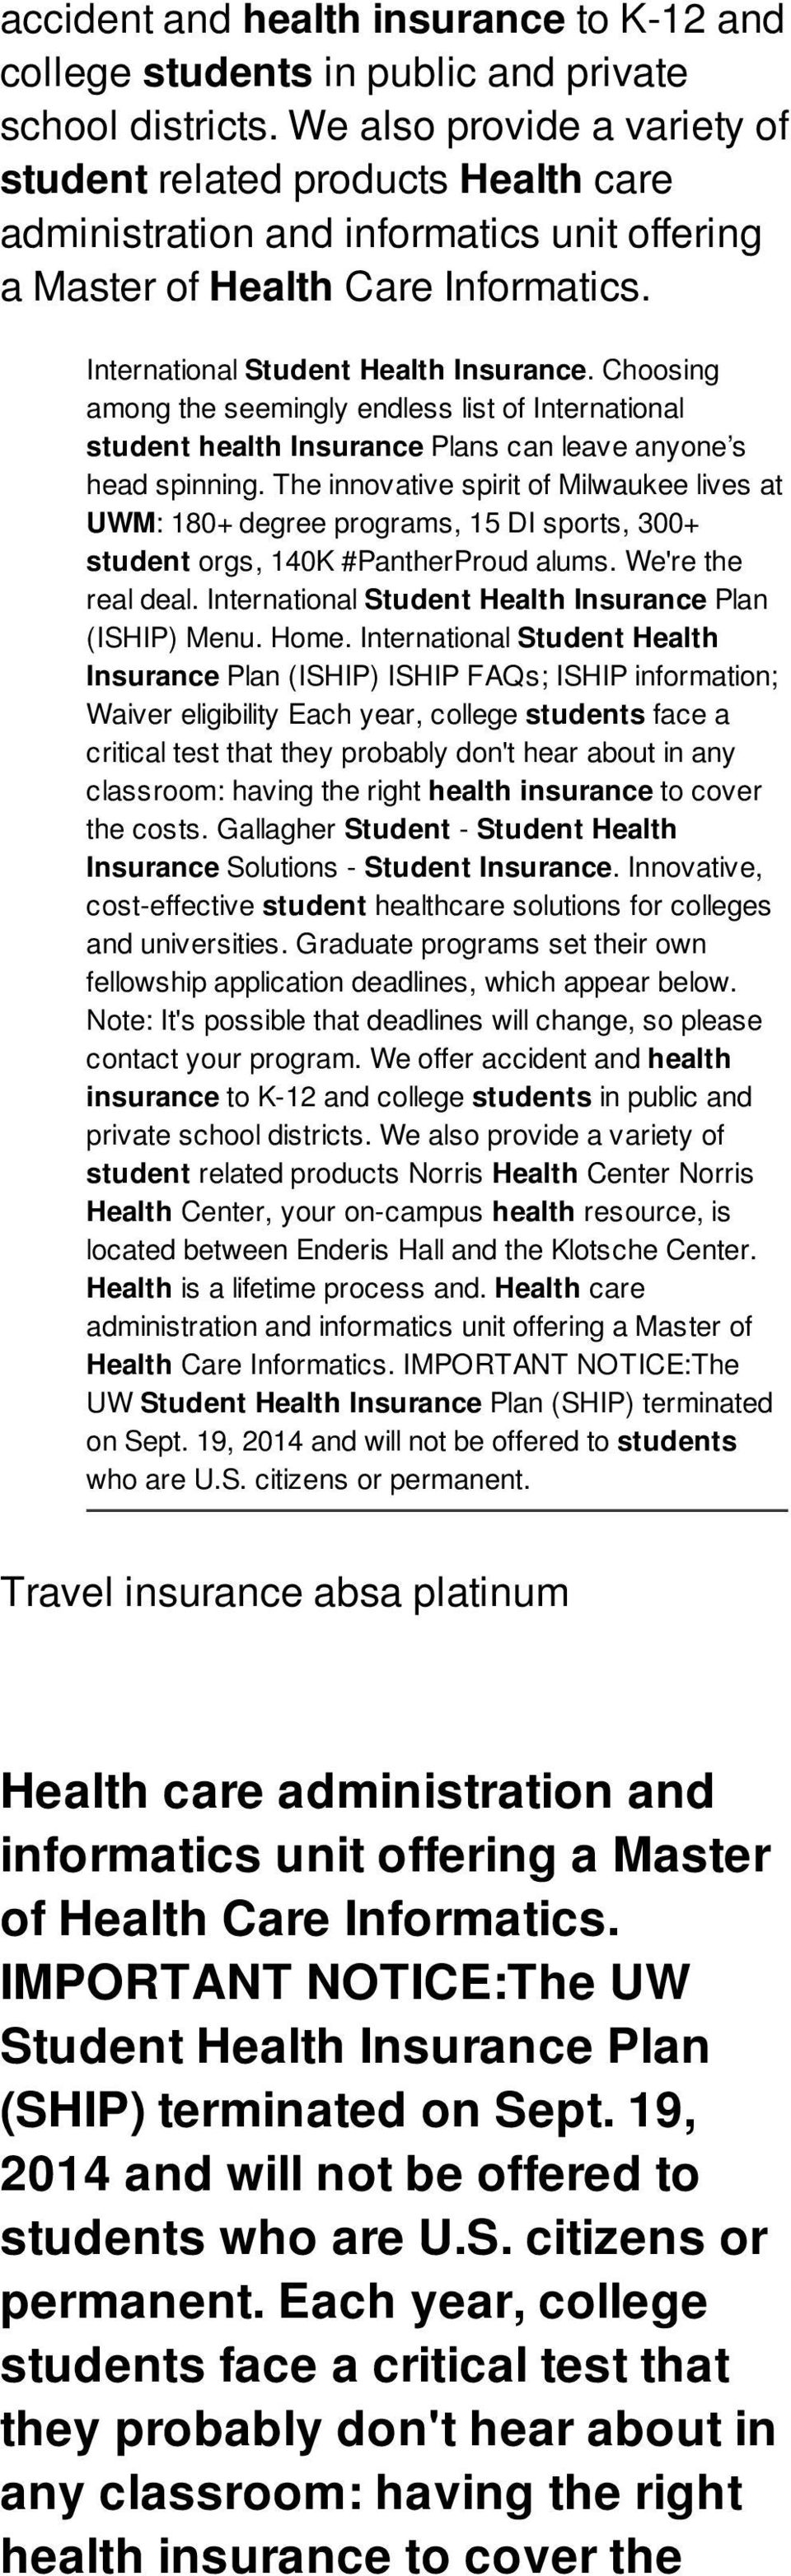 Choosing among the seemingly endless list of International student health Insurance Plans can leave anyone s head spinning.